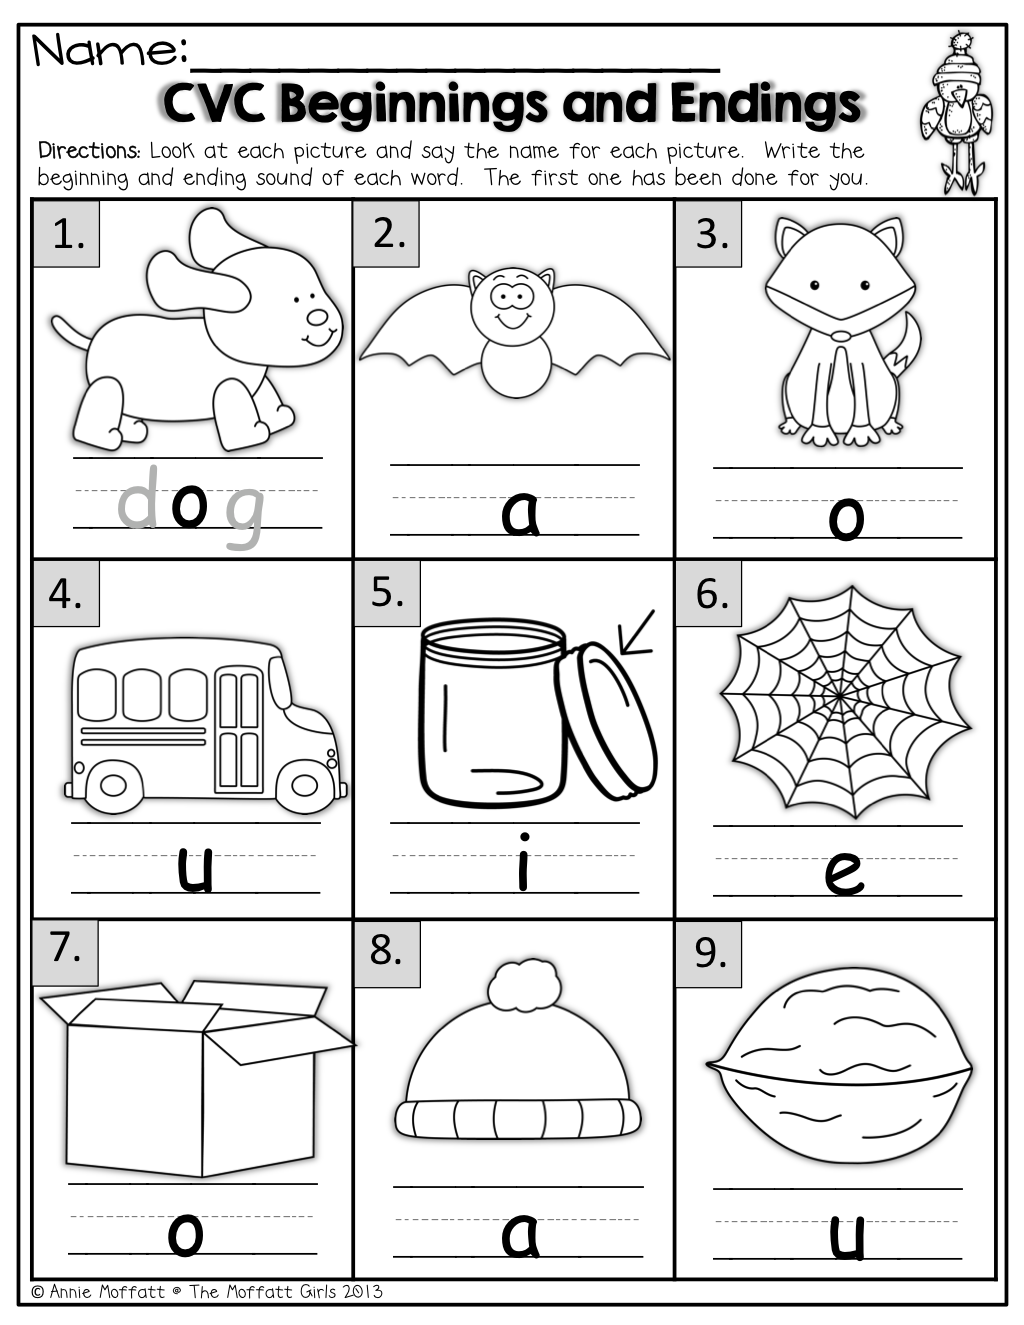 Blending Cvc Words Worksheets For Kindergarten